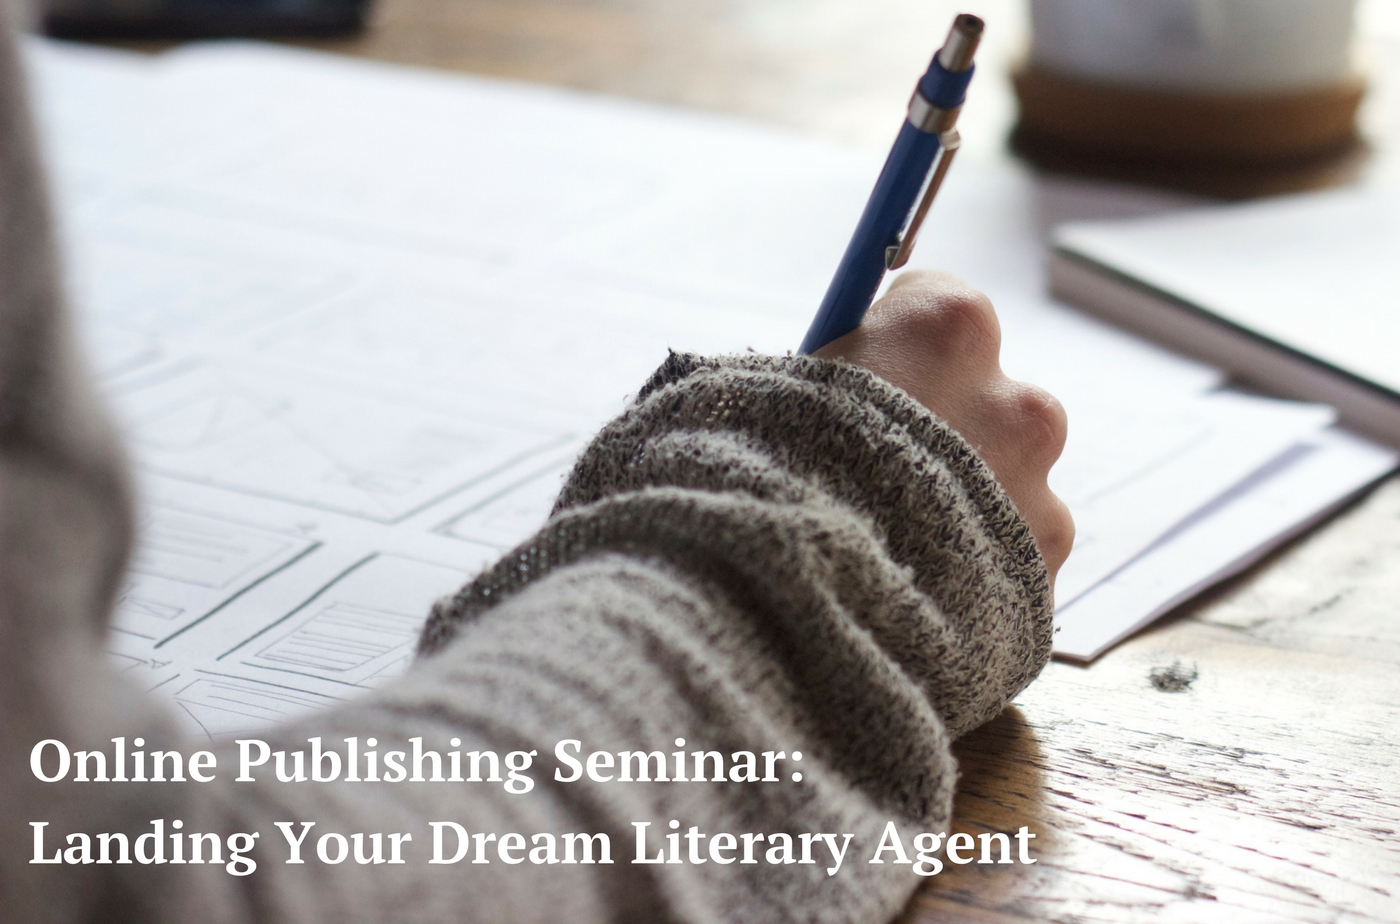 Catapult online classes: Sarah Bowlin, Catapult Editors, Publishing Independent Study: Writing the Query Letter &  Landing Your Dream Literary Agent  , Publishing, Independent Study